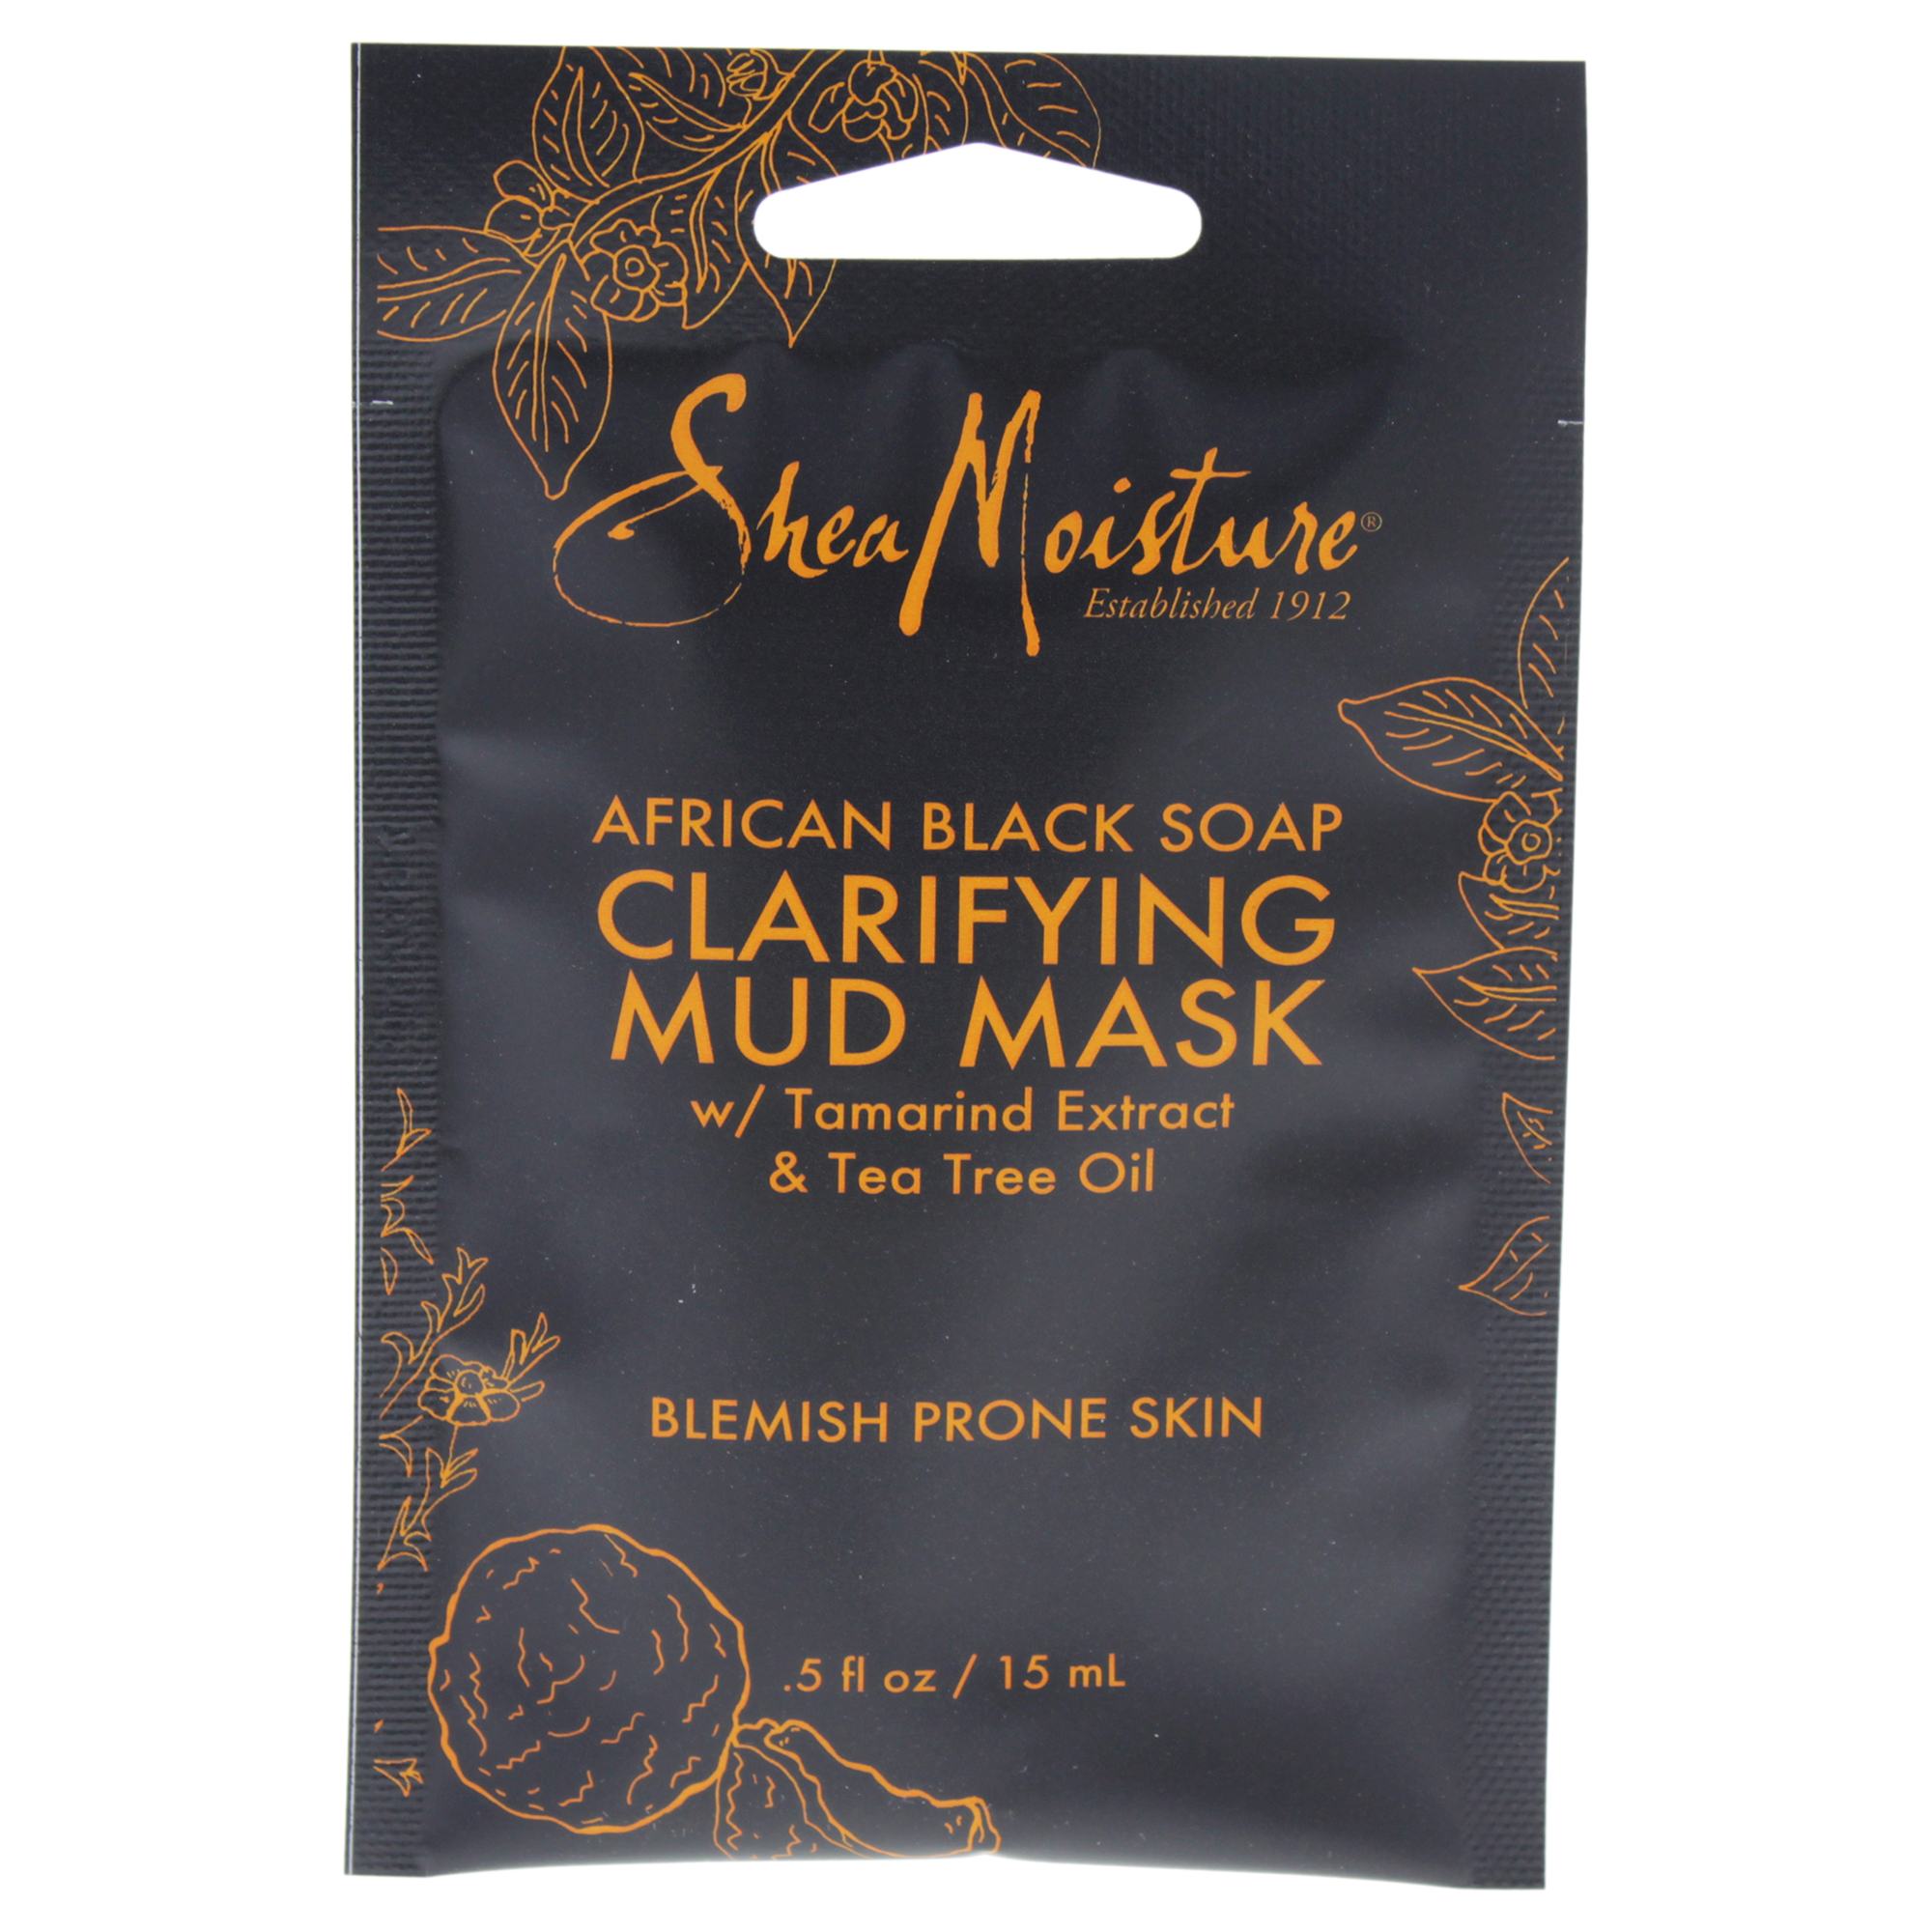 SheaMoisture African Black Soap Face Mud Mask Packette, .5 oz